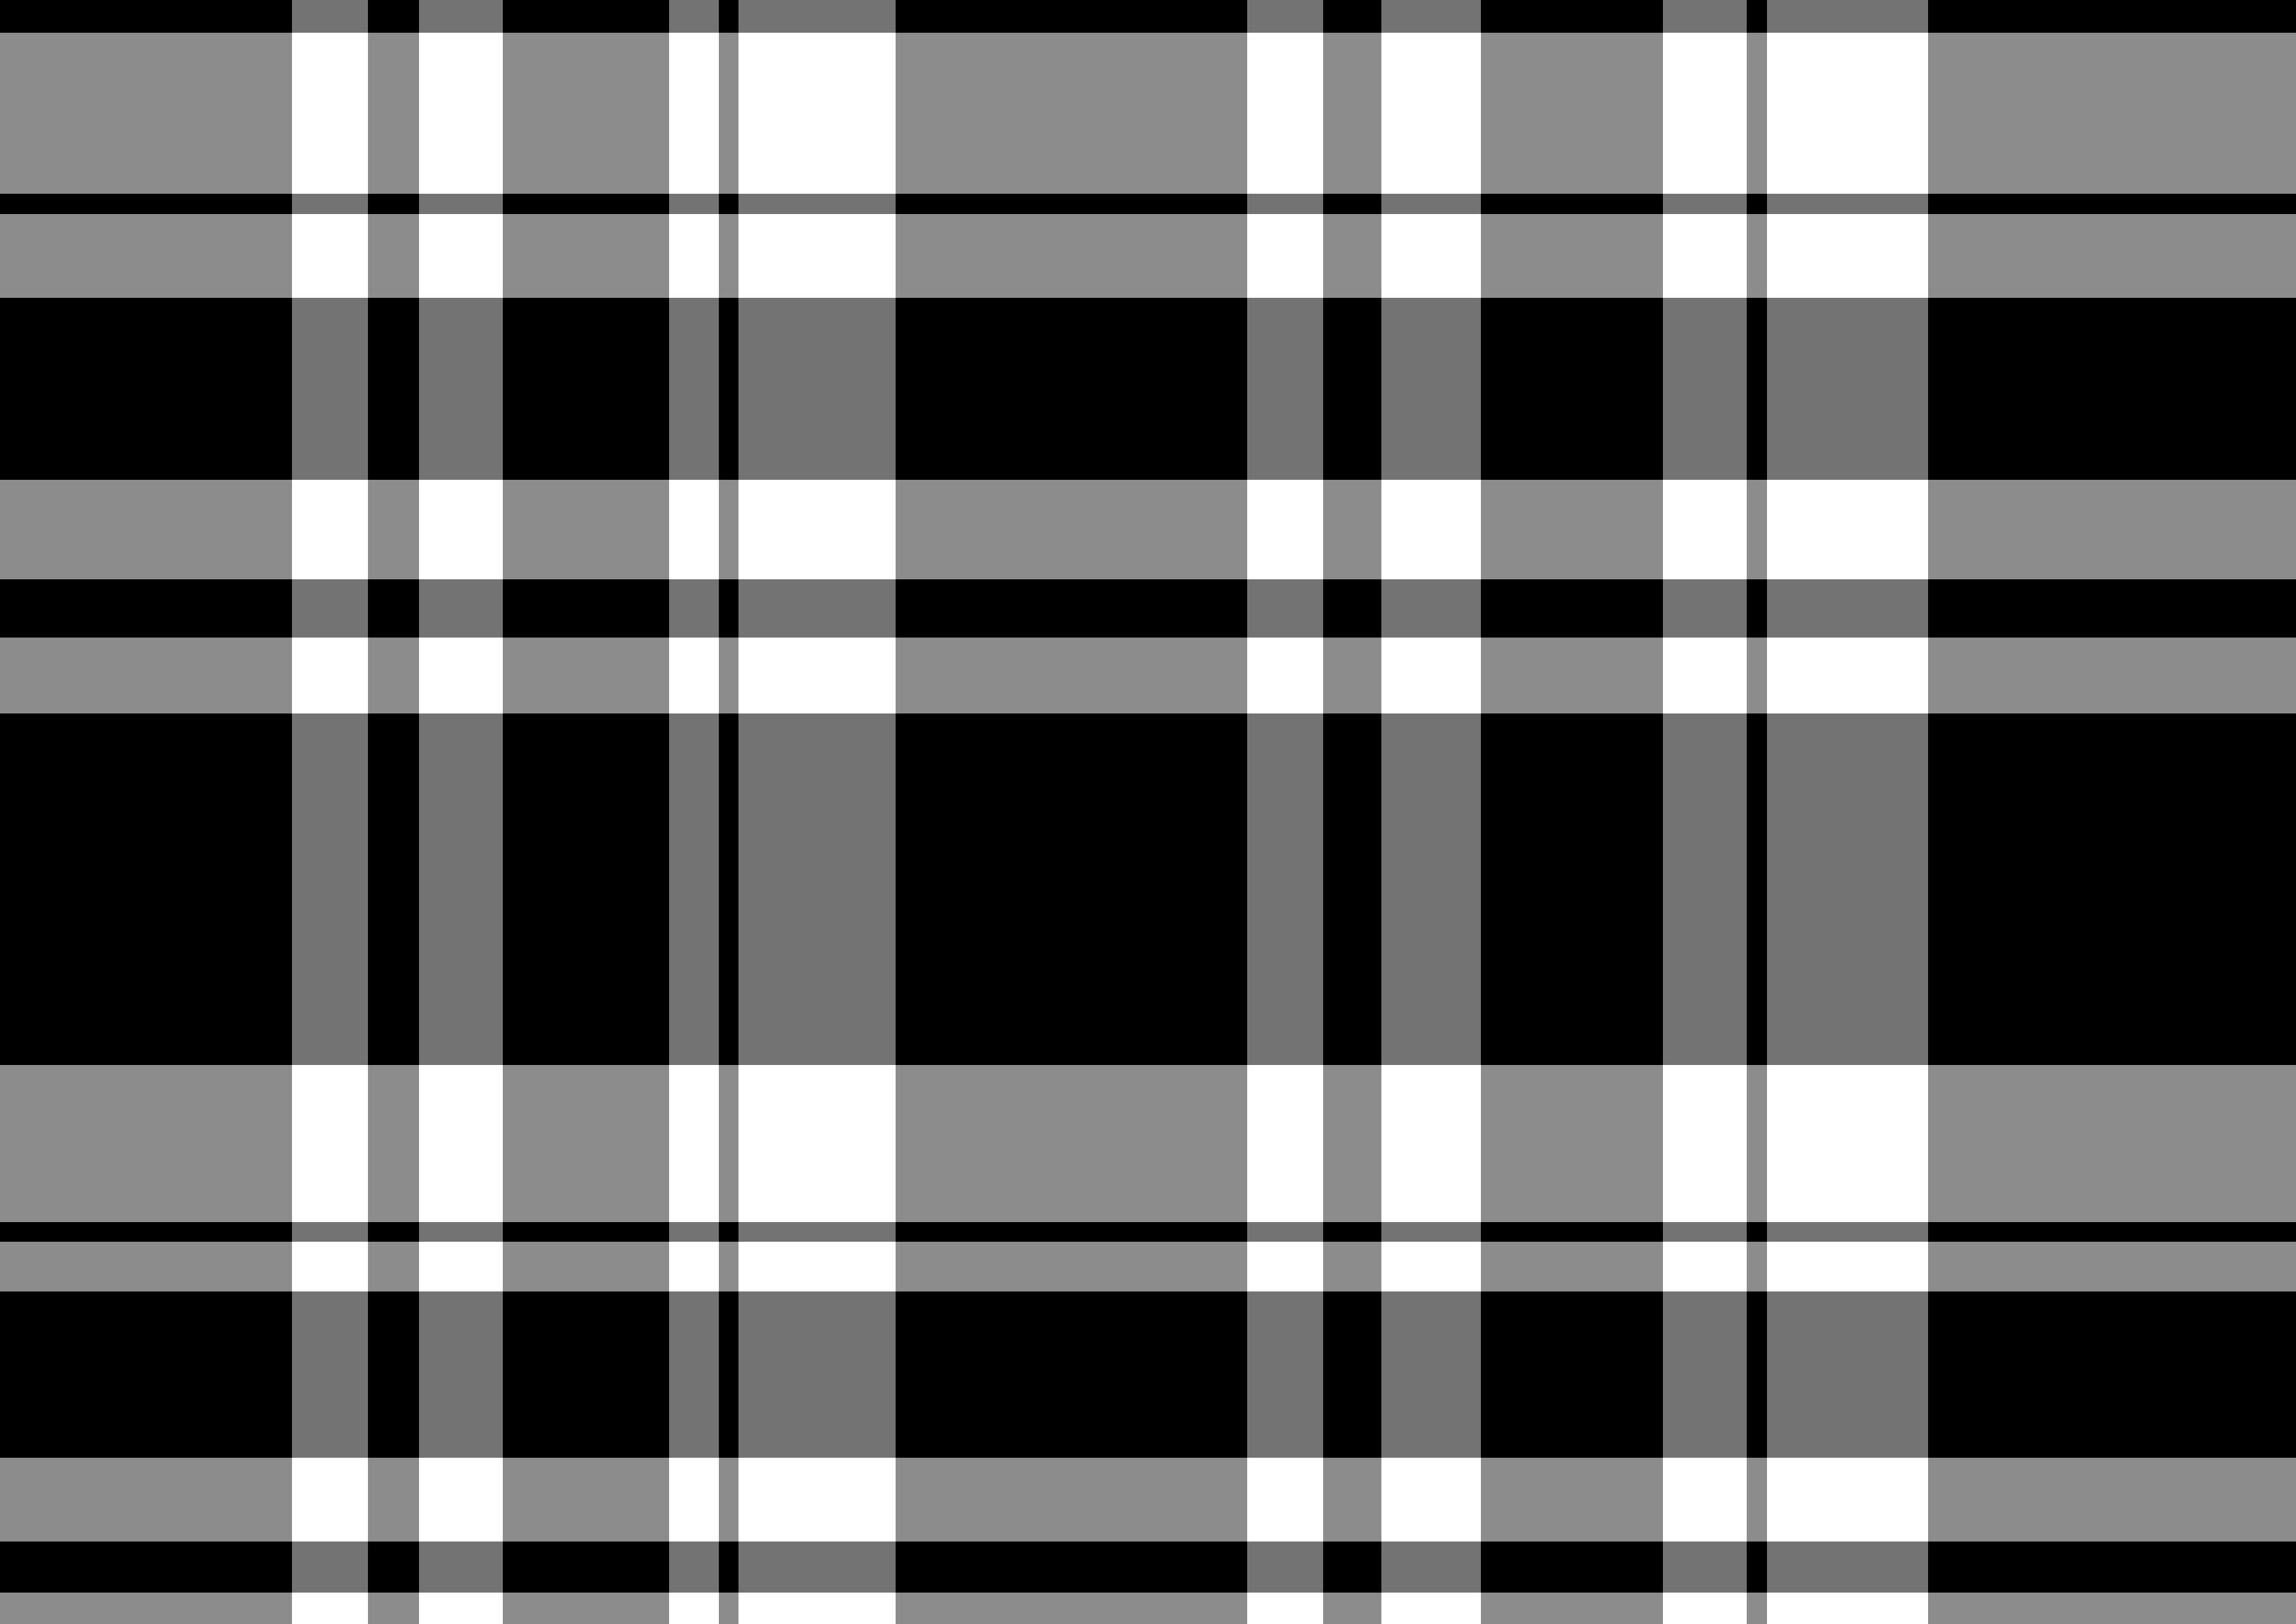 pink black email and black plaidget your rustic seamless plaid 3507x2481